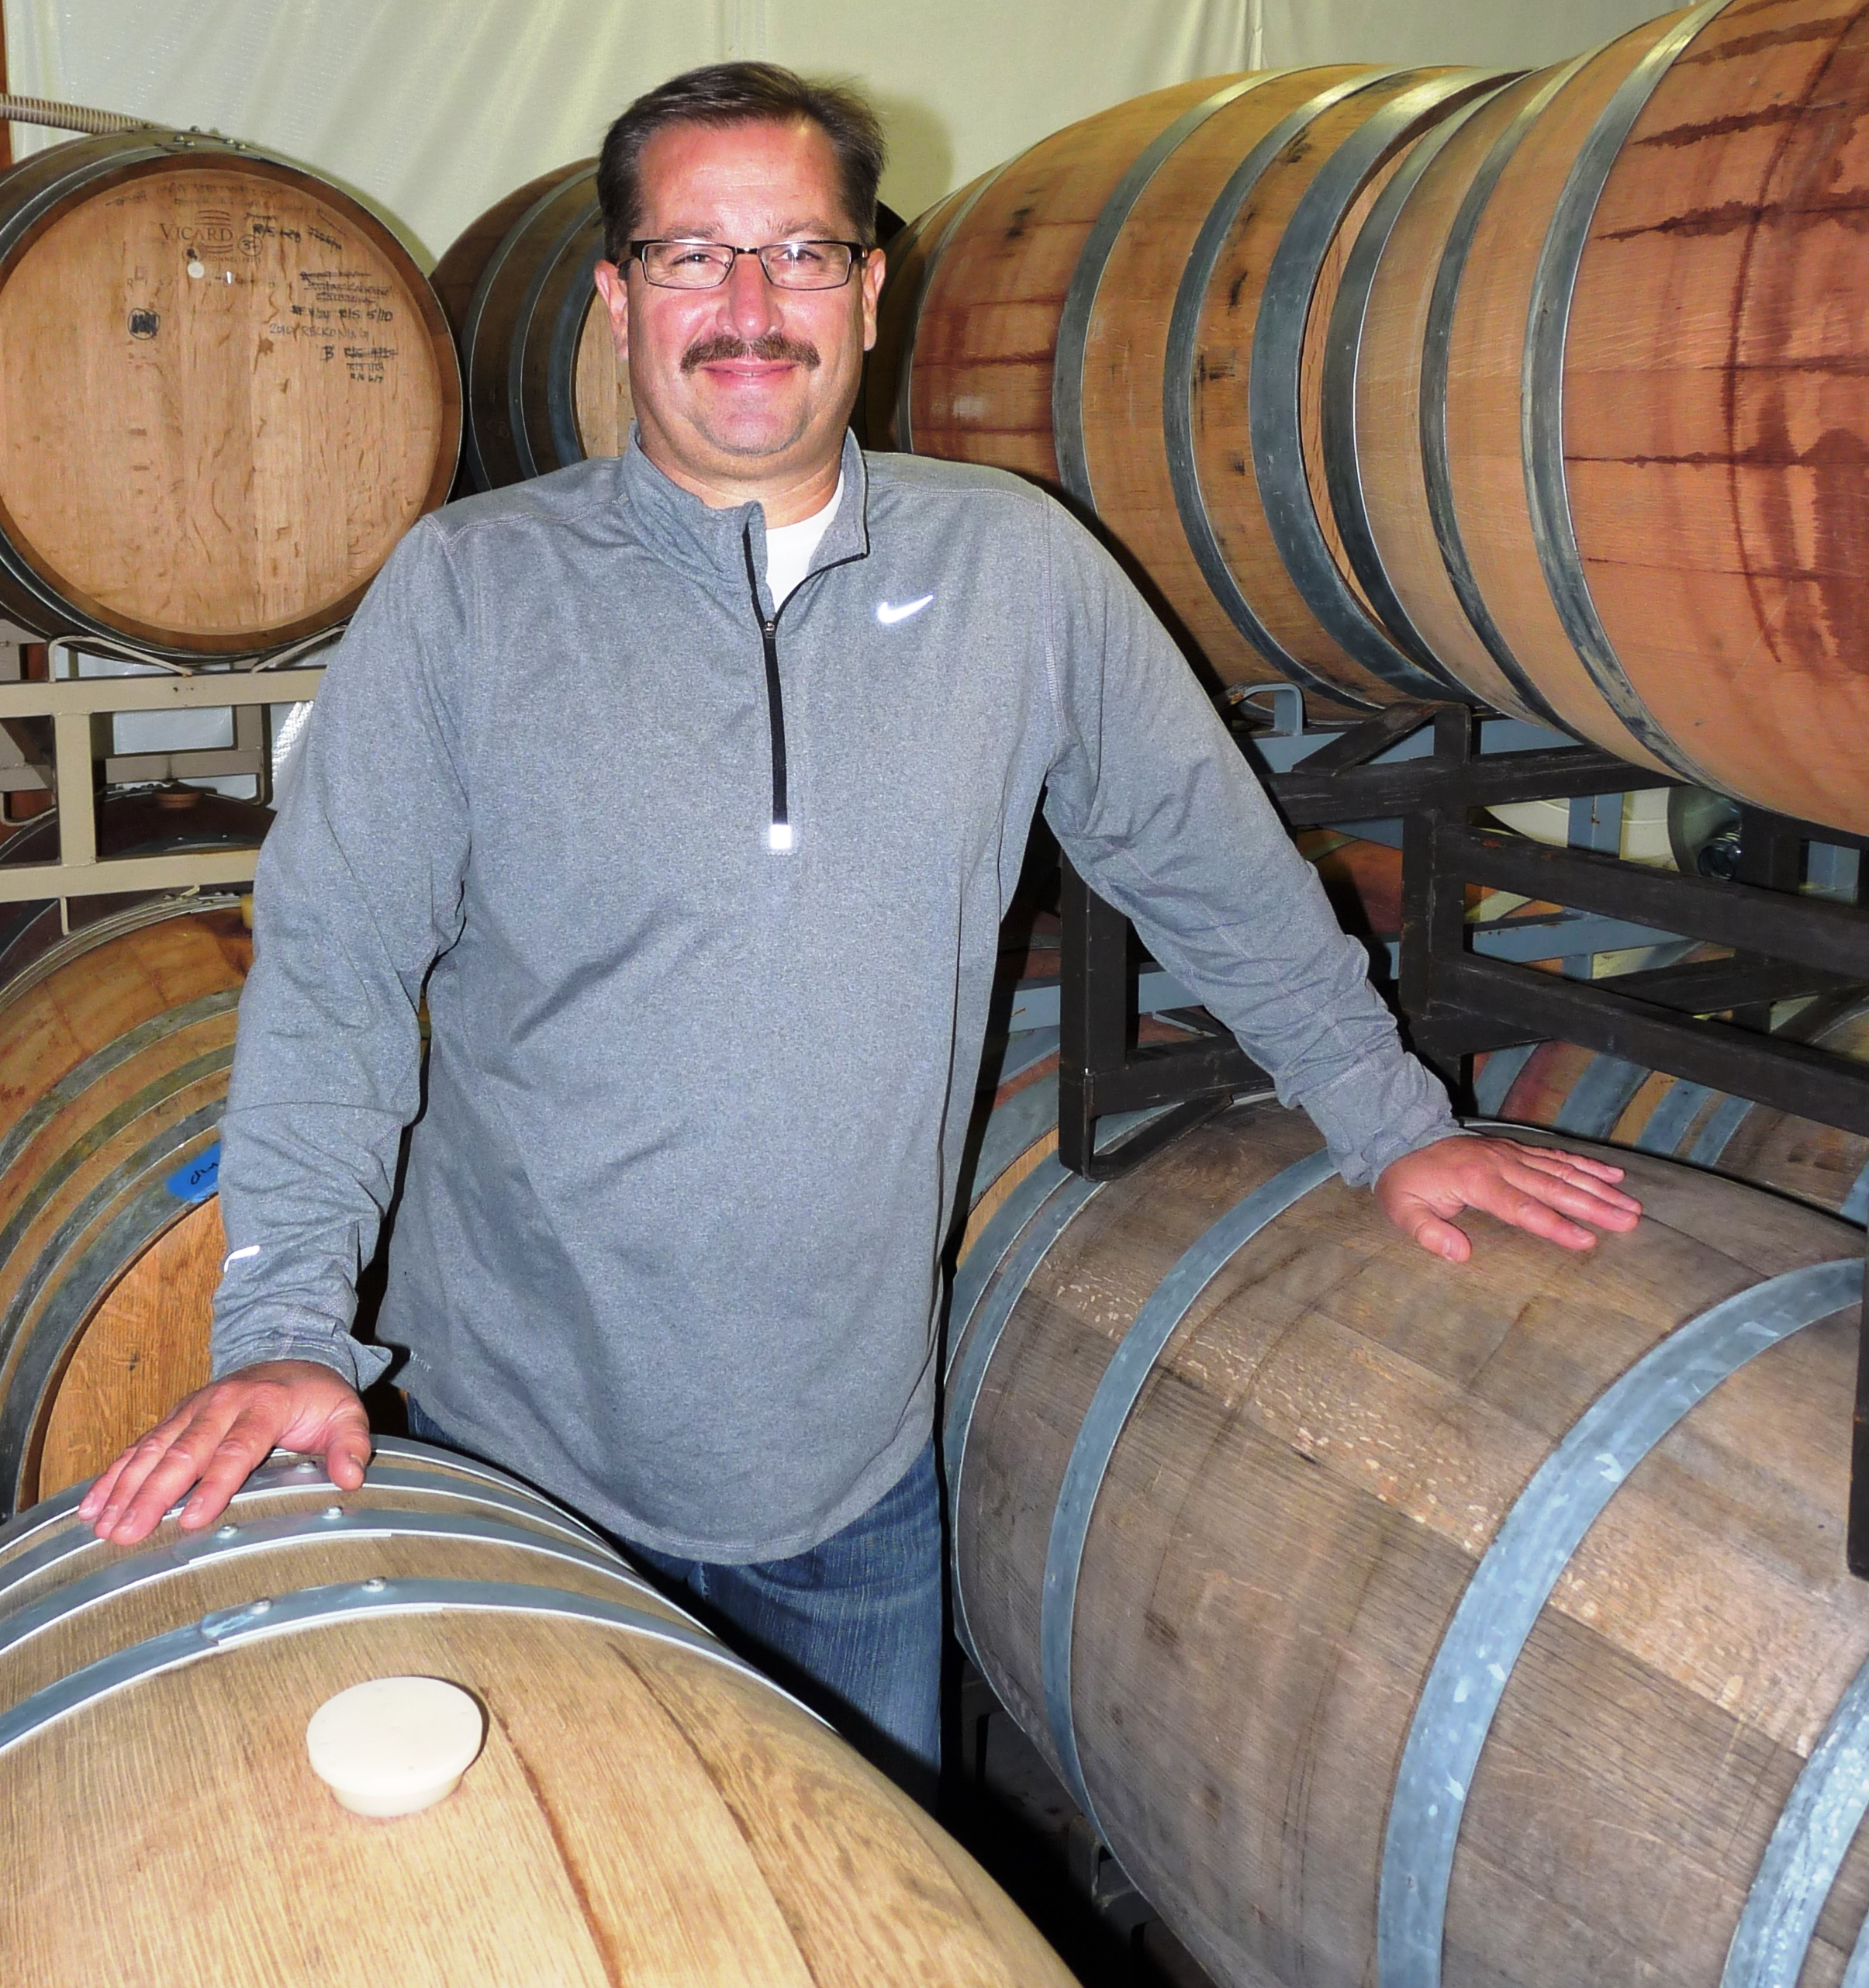 Greg Weber, winemaker at Confluence Vineyards & Winery in Ridgefield, crafts bold French varietals with a nod to traditional Italian and Spanish wines.